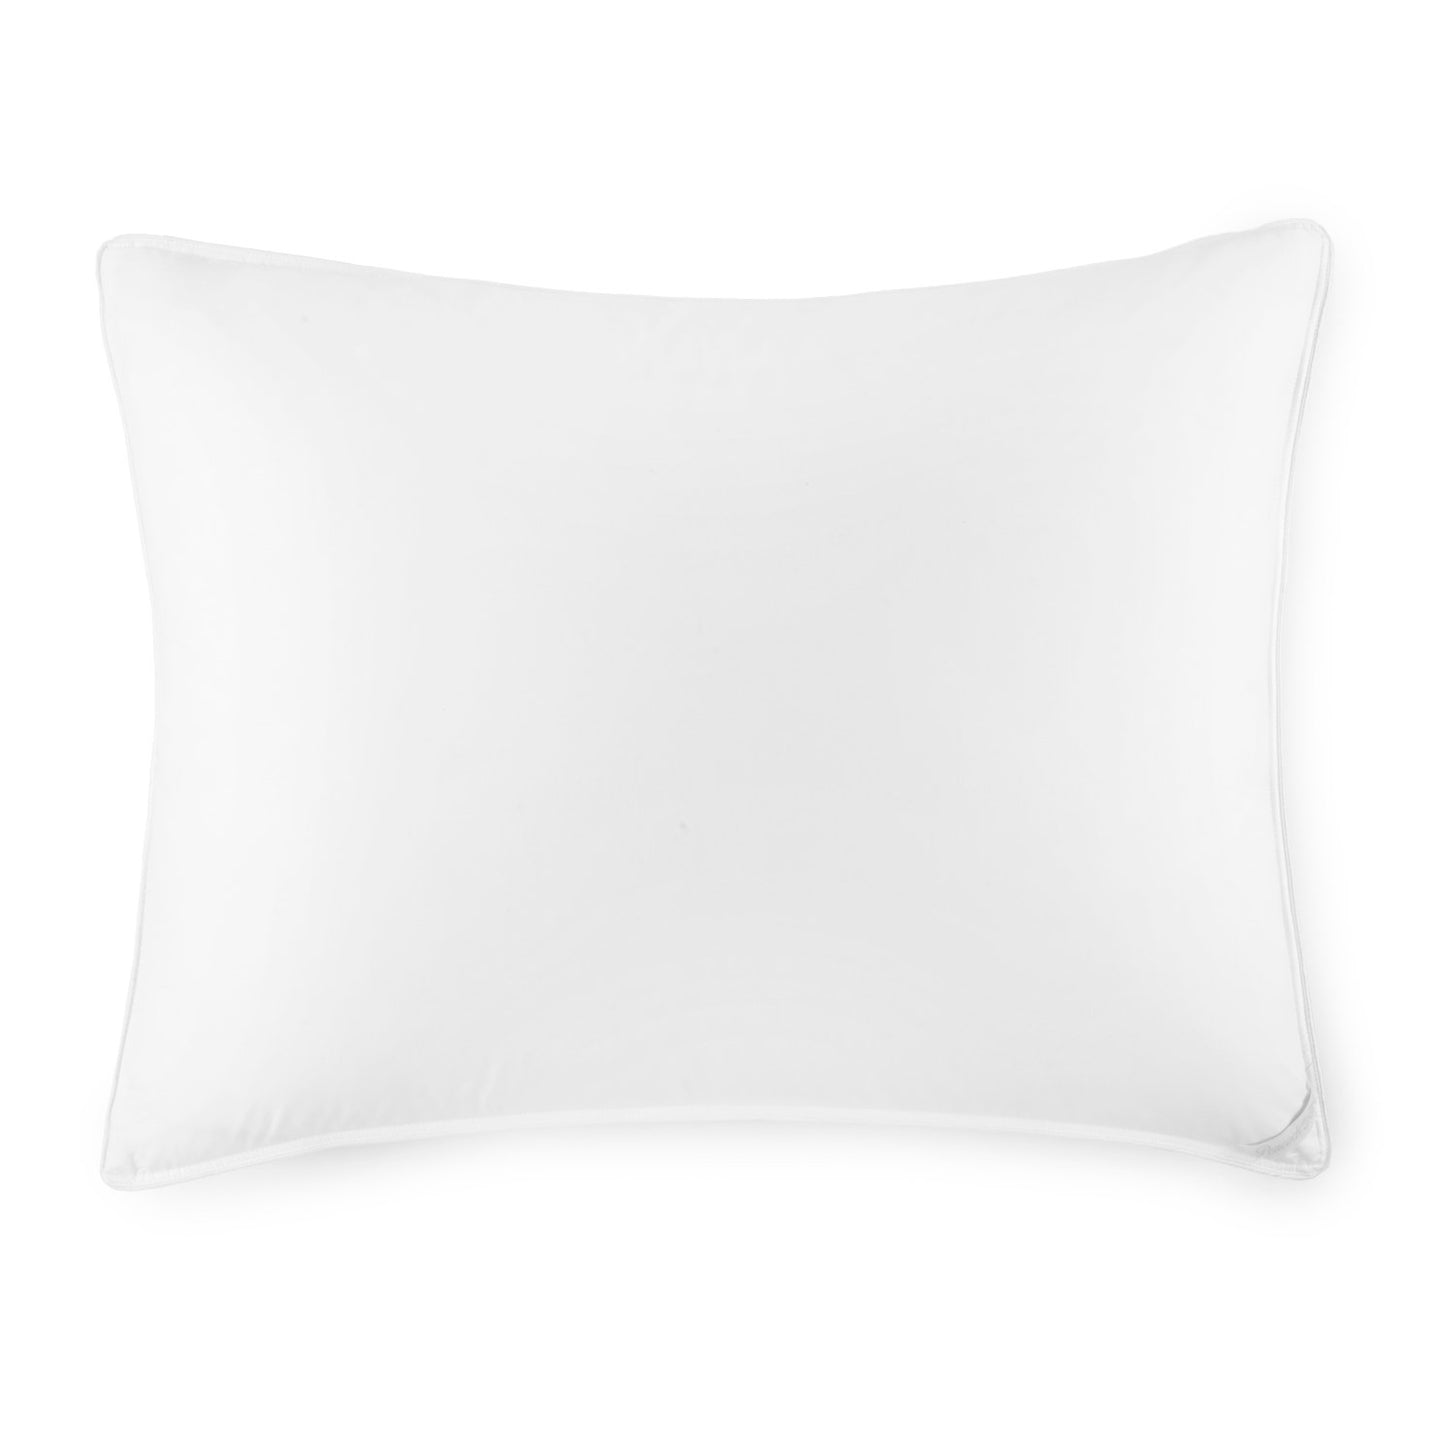 White goose down bed pillow